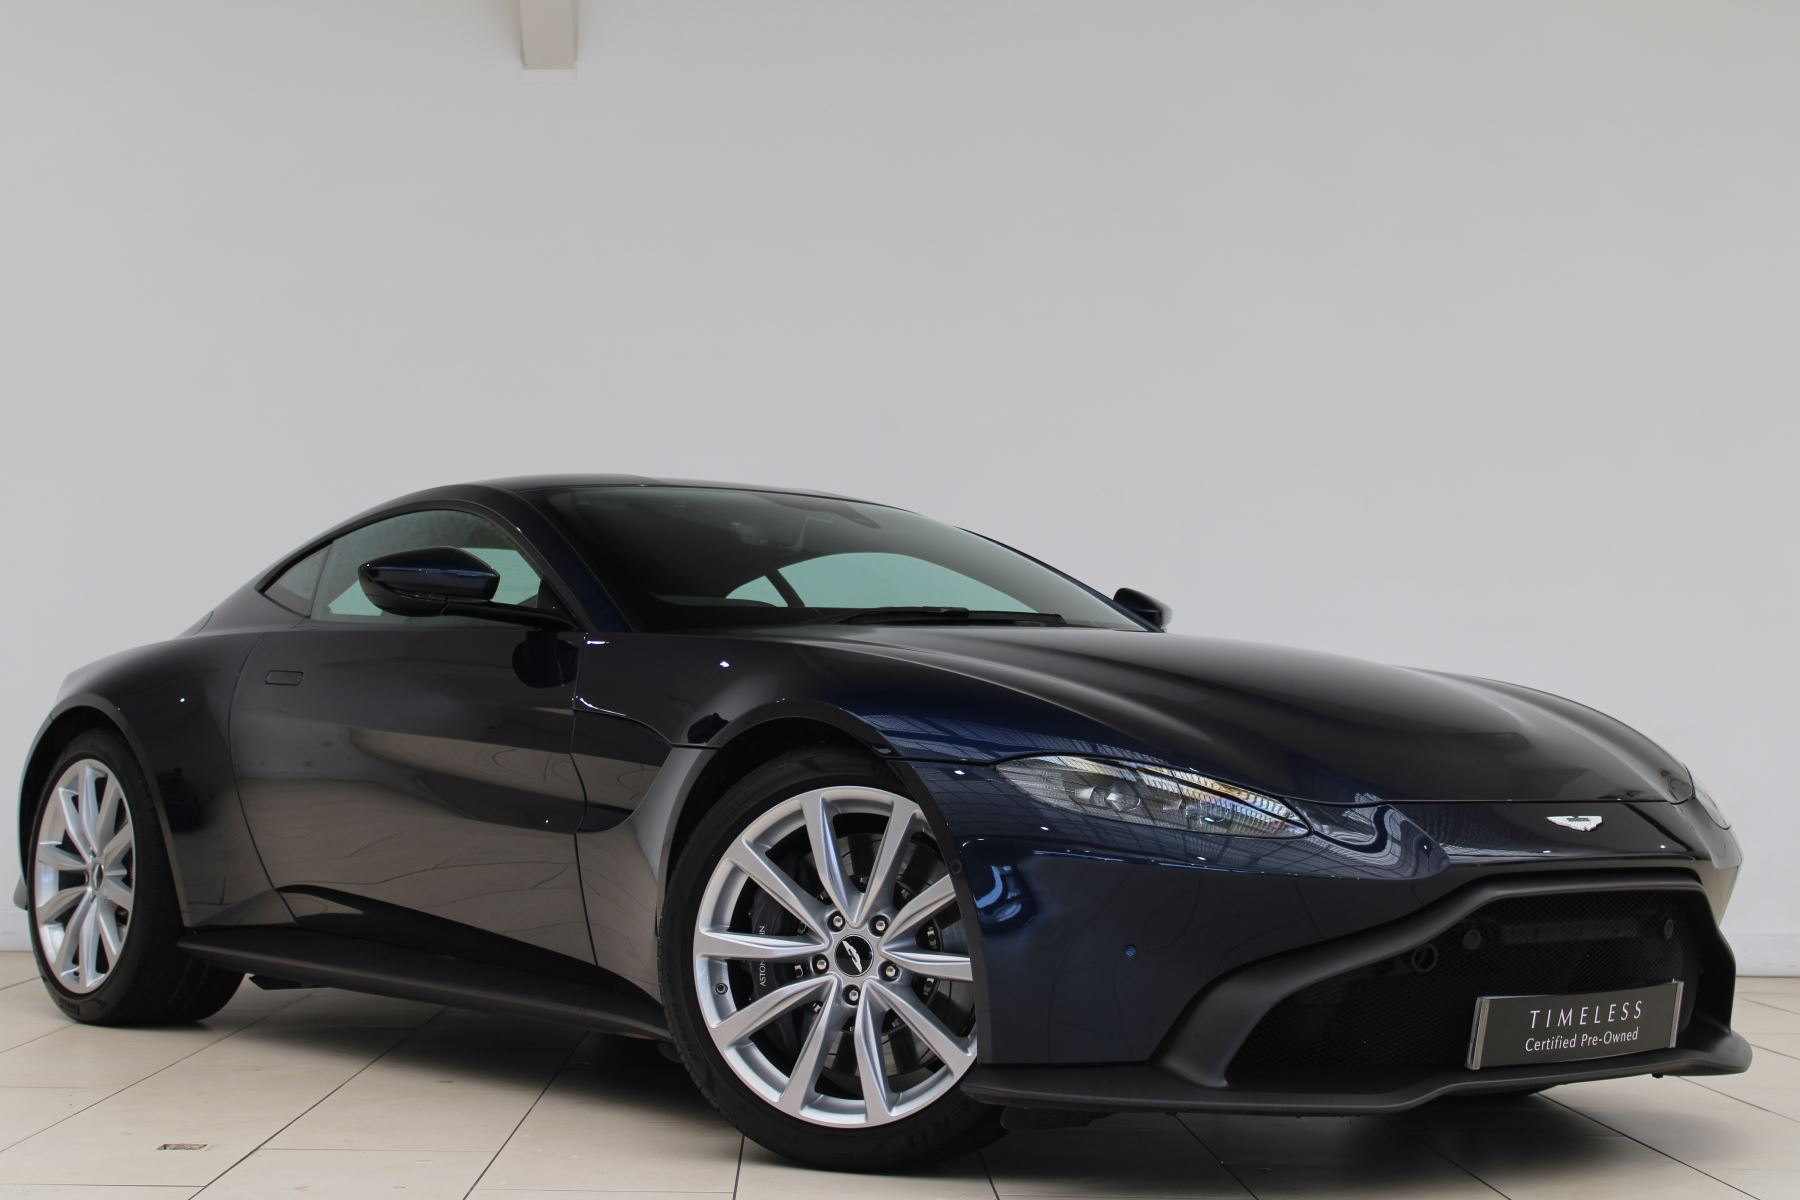 Aston Martin New Vantage 2dr ZF 8 Speed 3982.0 Automatic 3 door Coupe (2019)